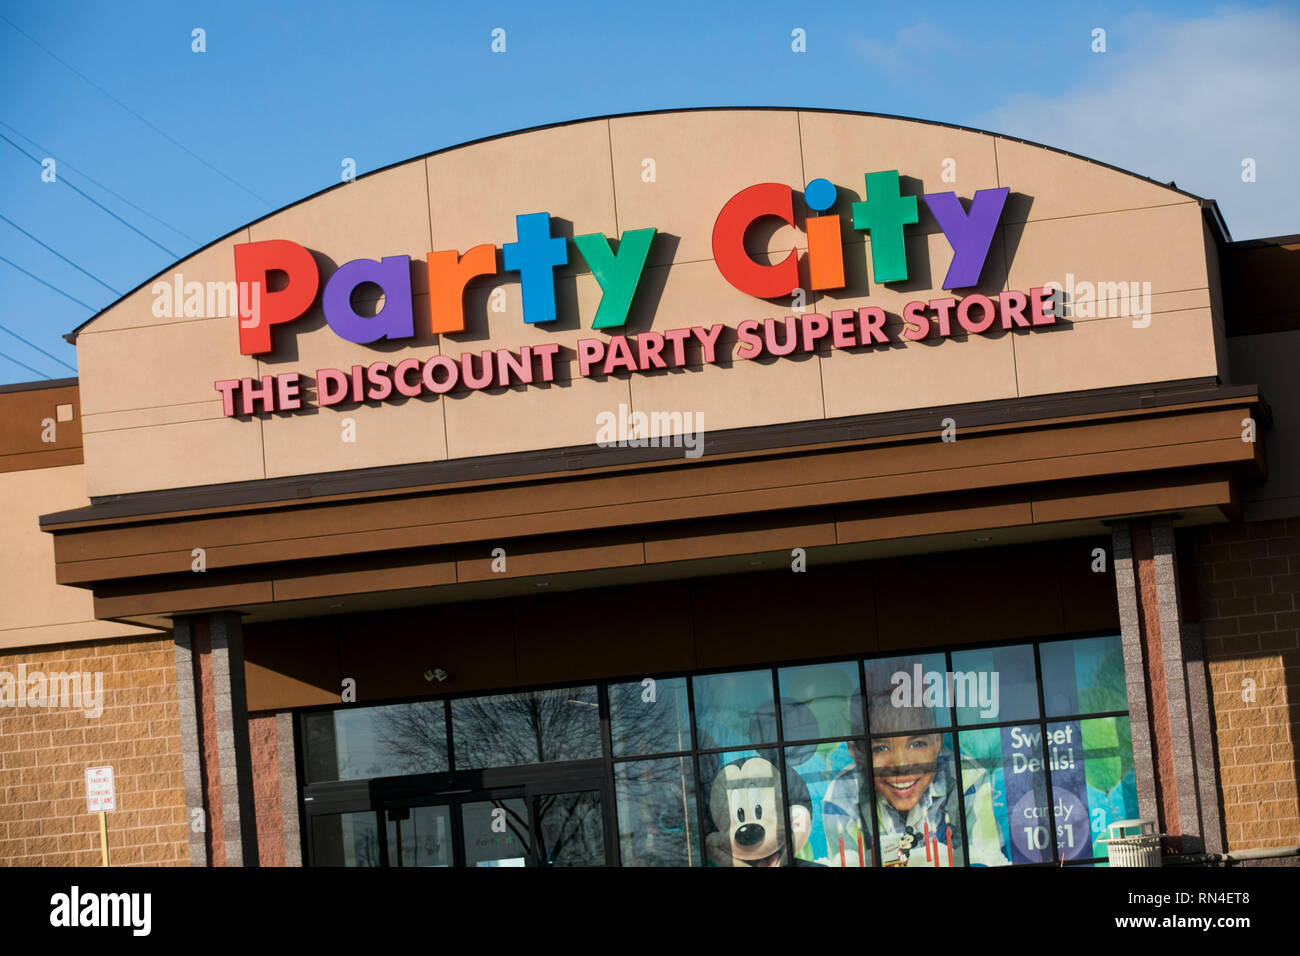 A logo sign outside of a Party City retail store location in